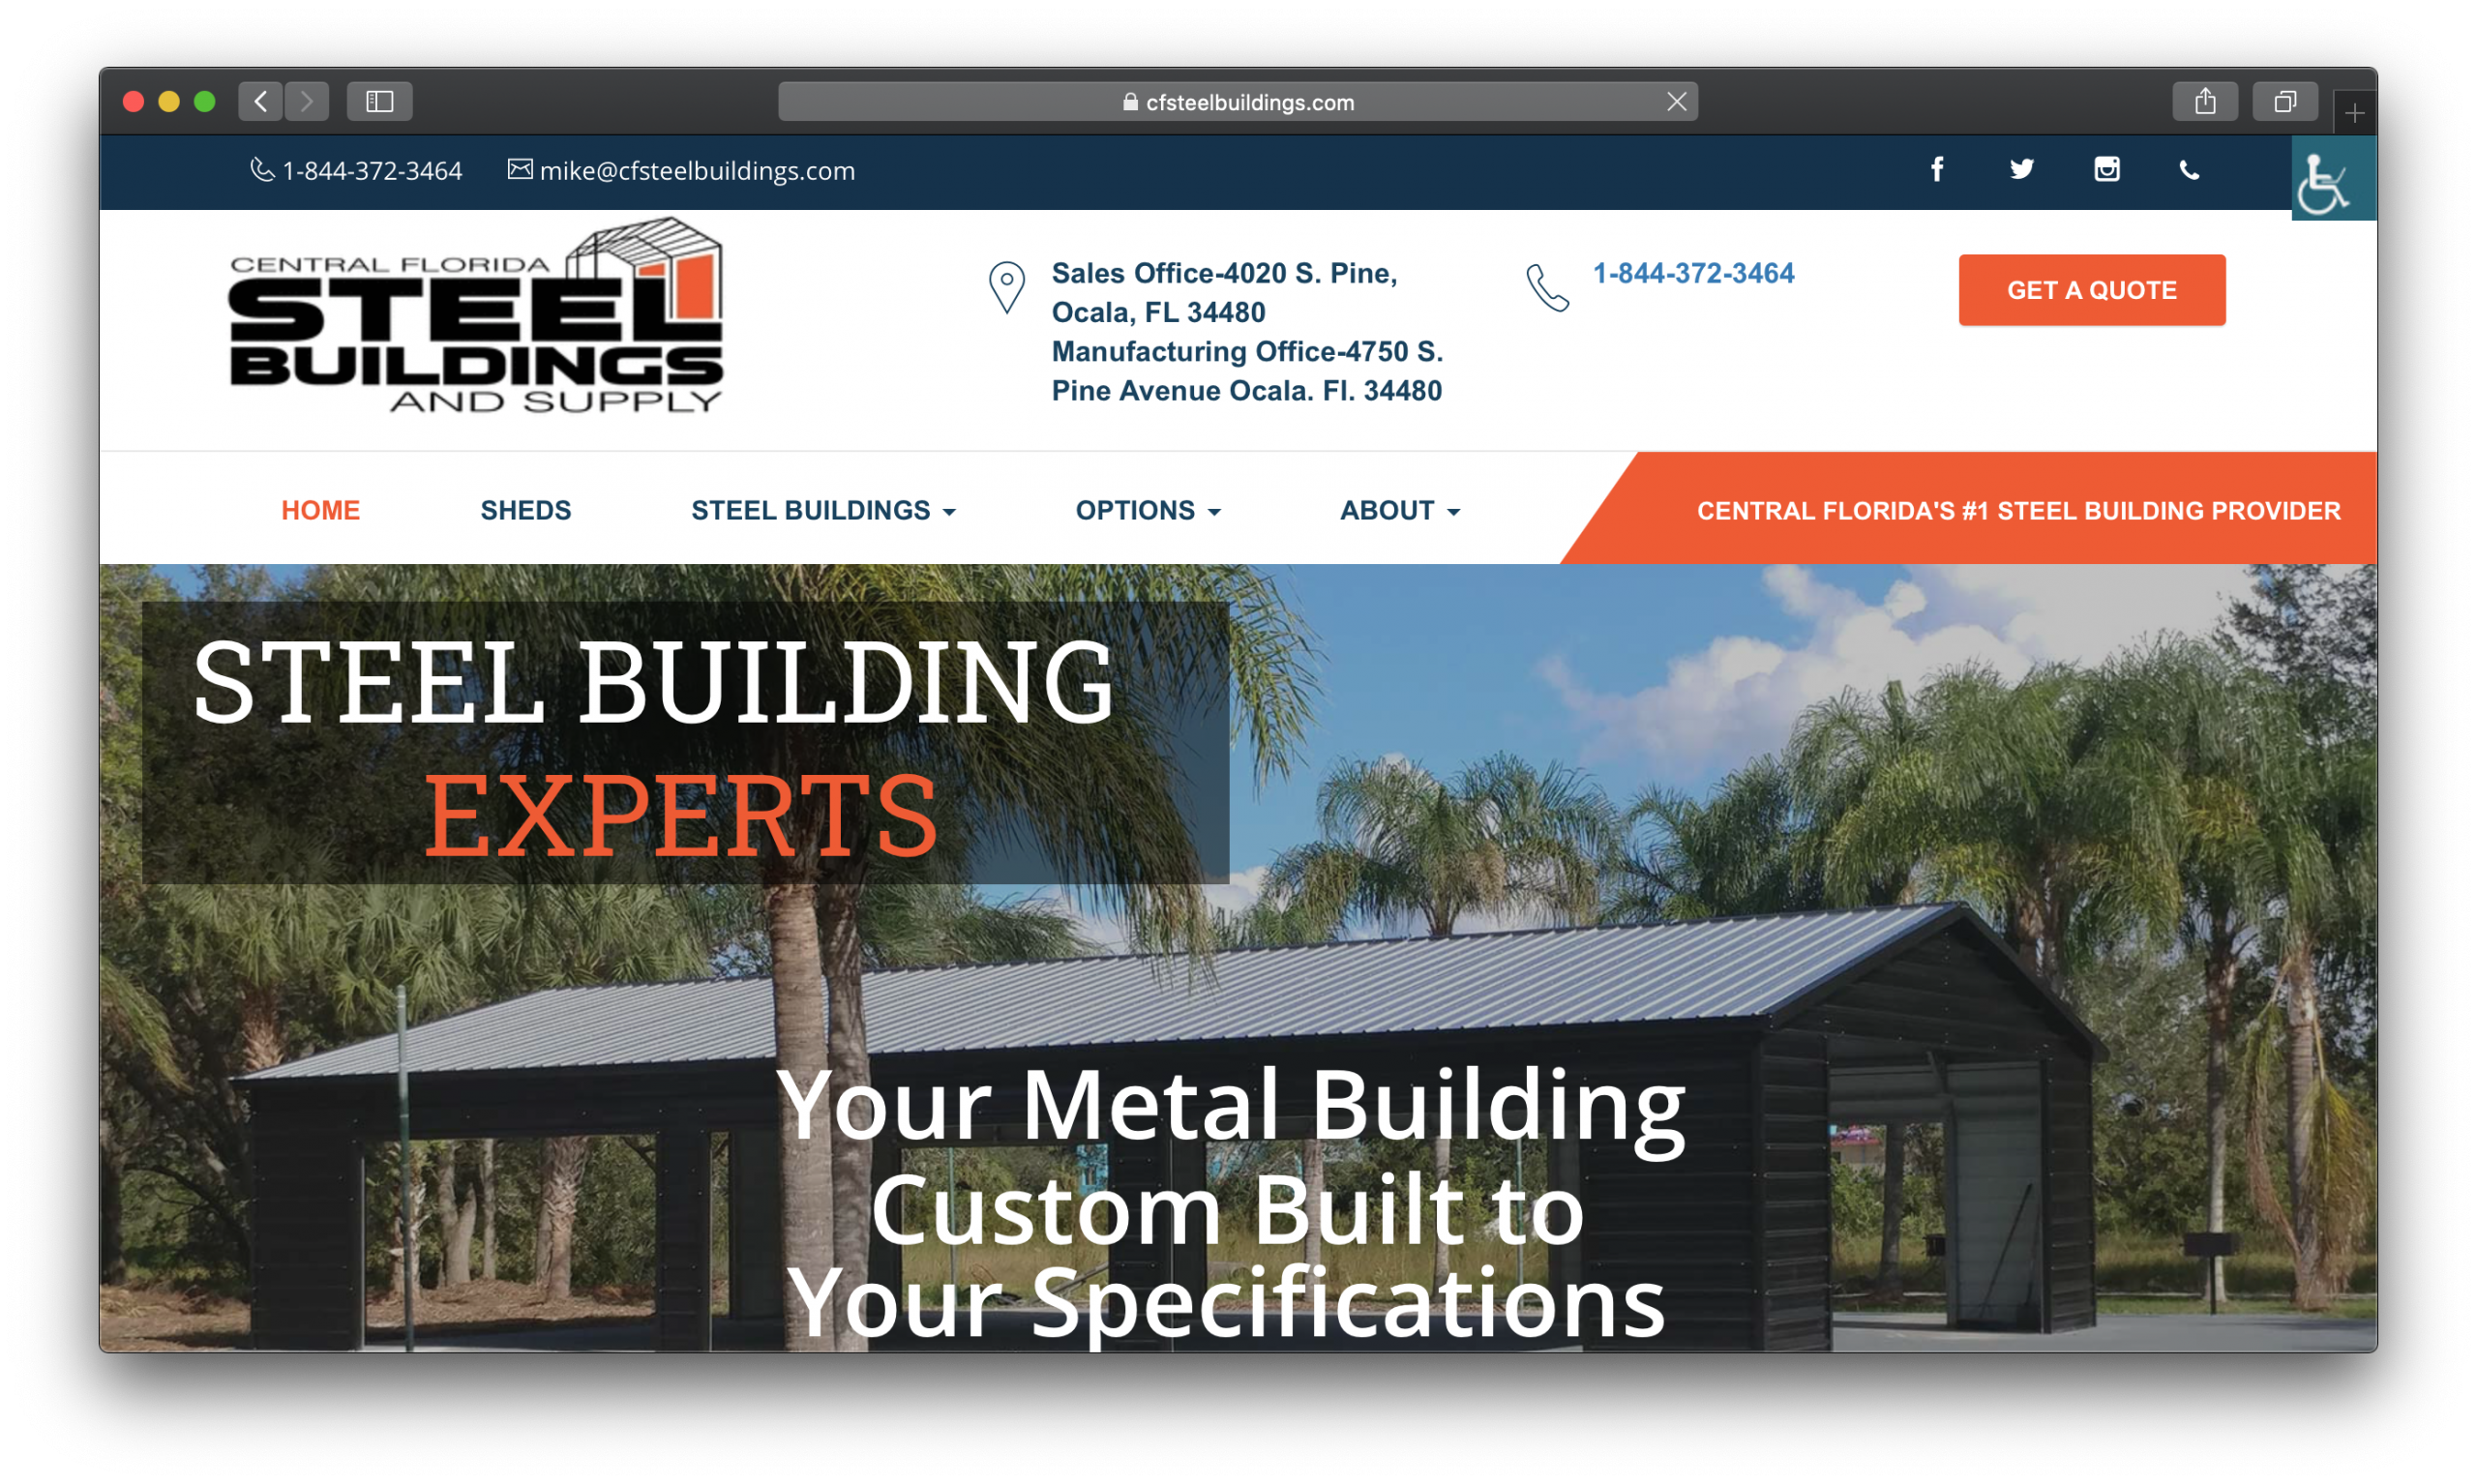 Central Florida Steel Buildings and Supply